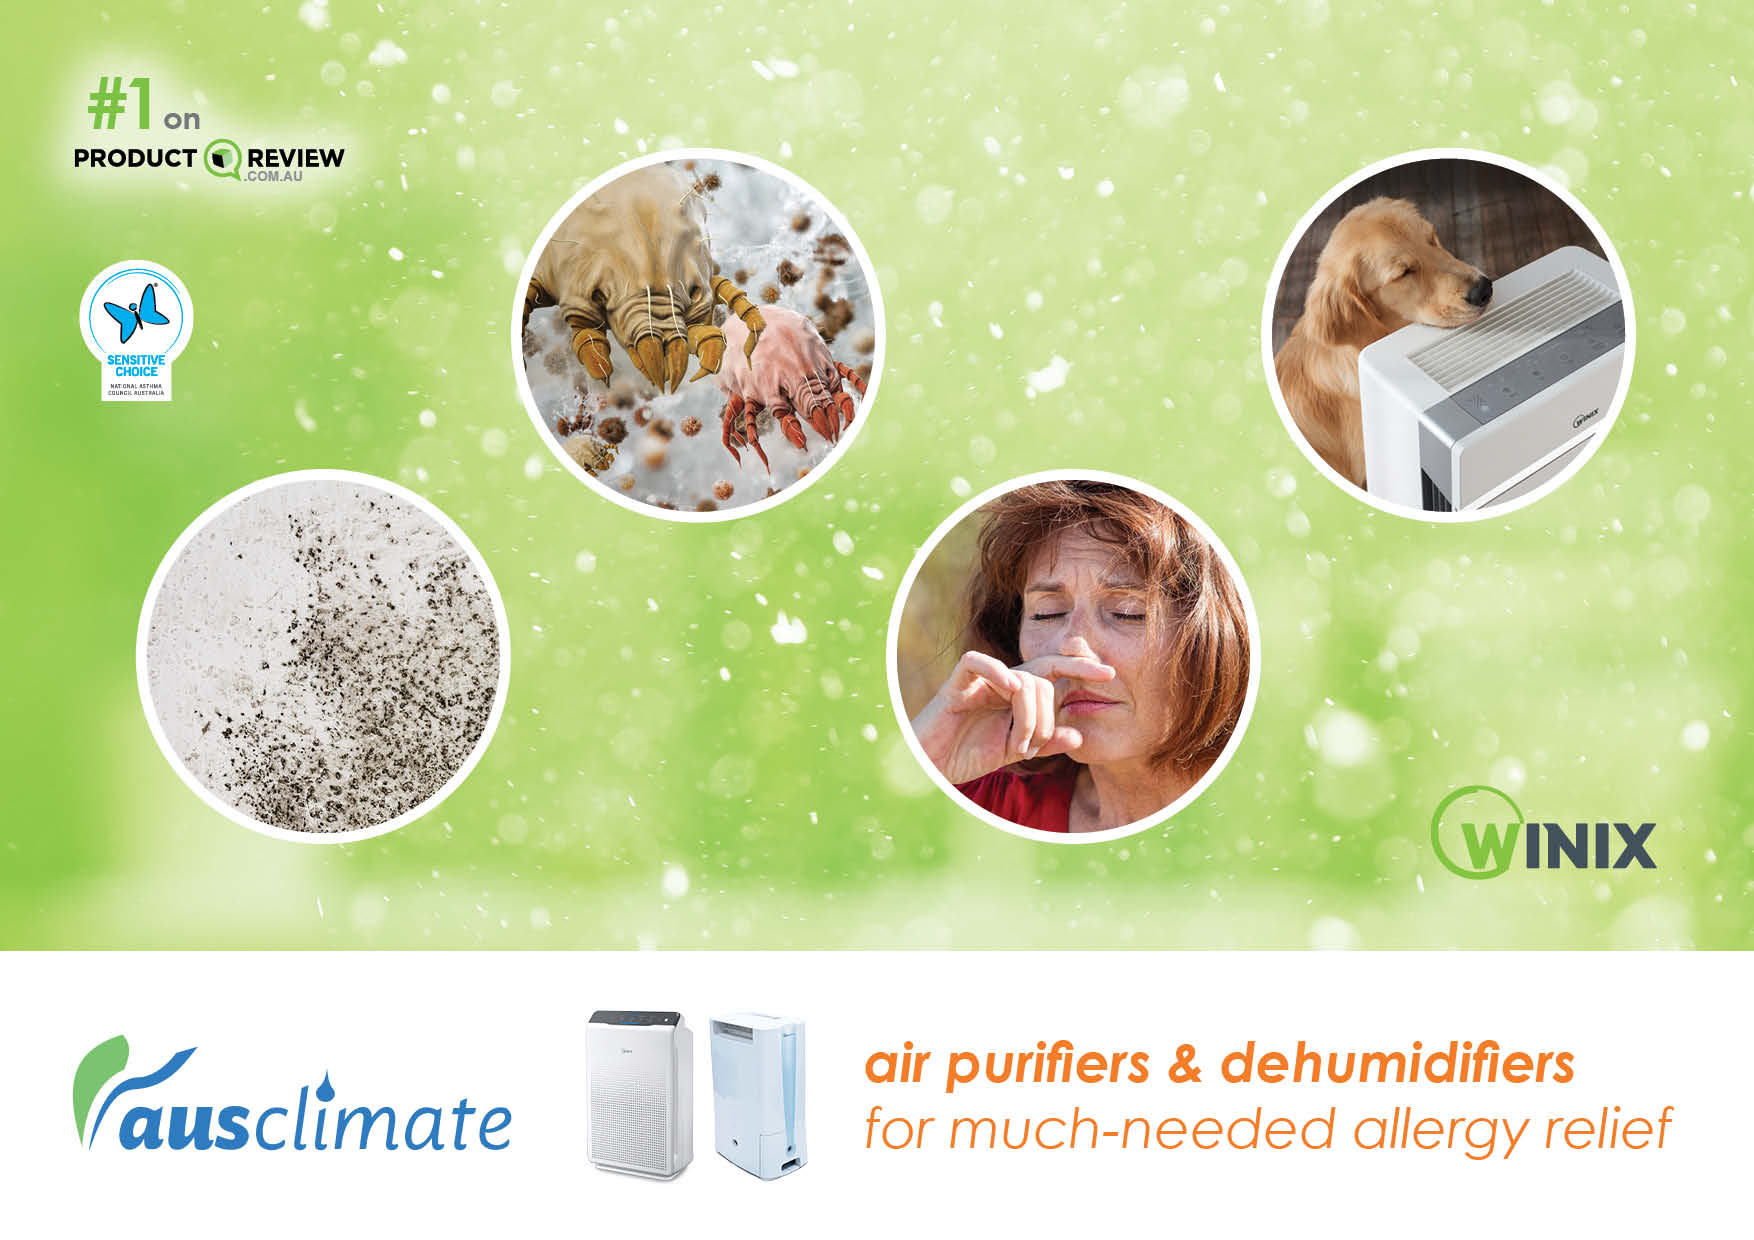 Dehumidifiers and Air Purifiers from Allergies [Social Media]